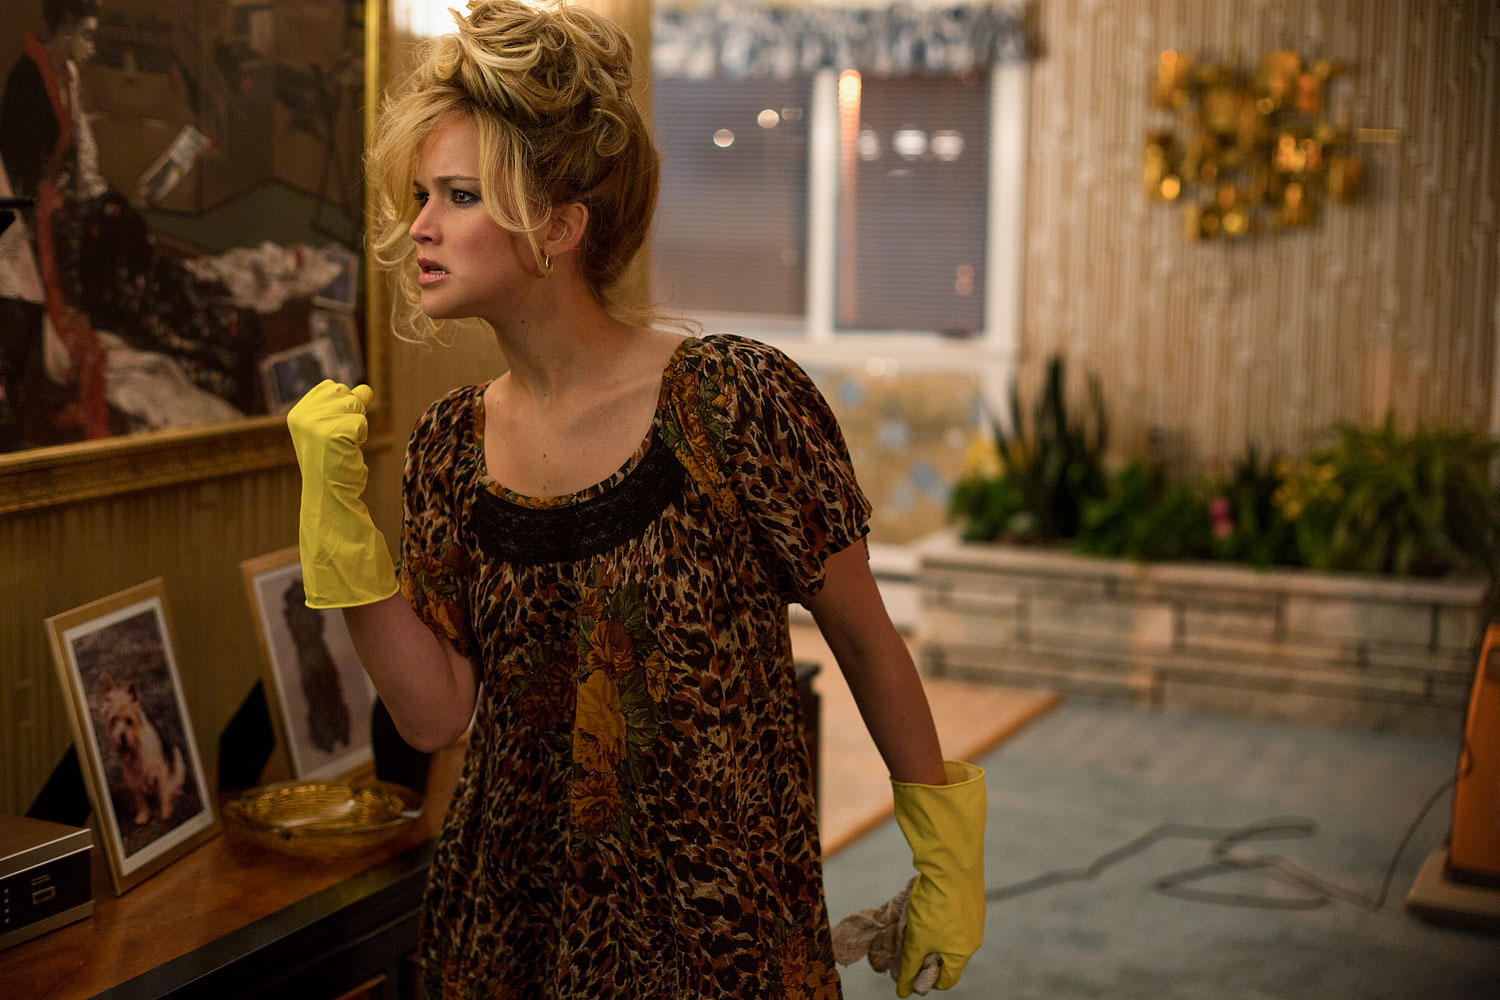 As if her 2013 wasn't already incredible, she joined an all-star cast to play the unstable Rosalyn Rosenfield in American Hustle.